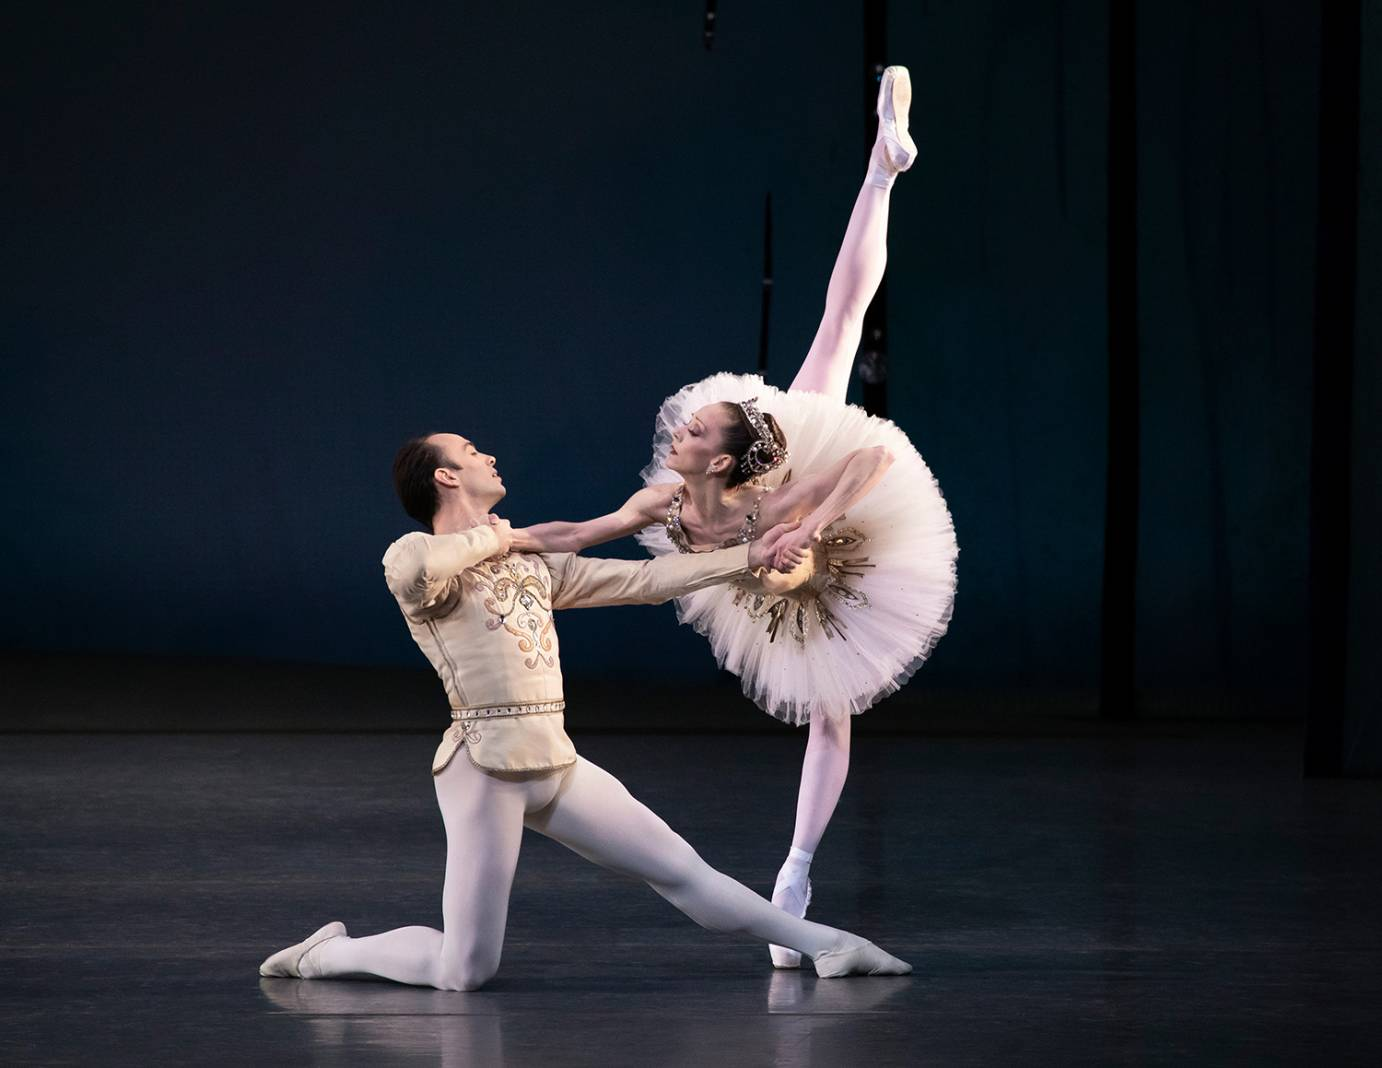 Tyler Angle partners Maria Kowroski, who's in a deep arabesque